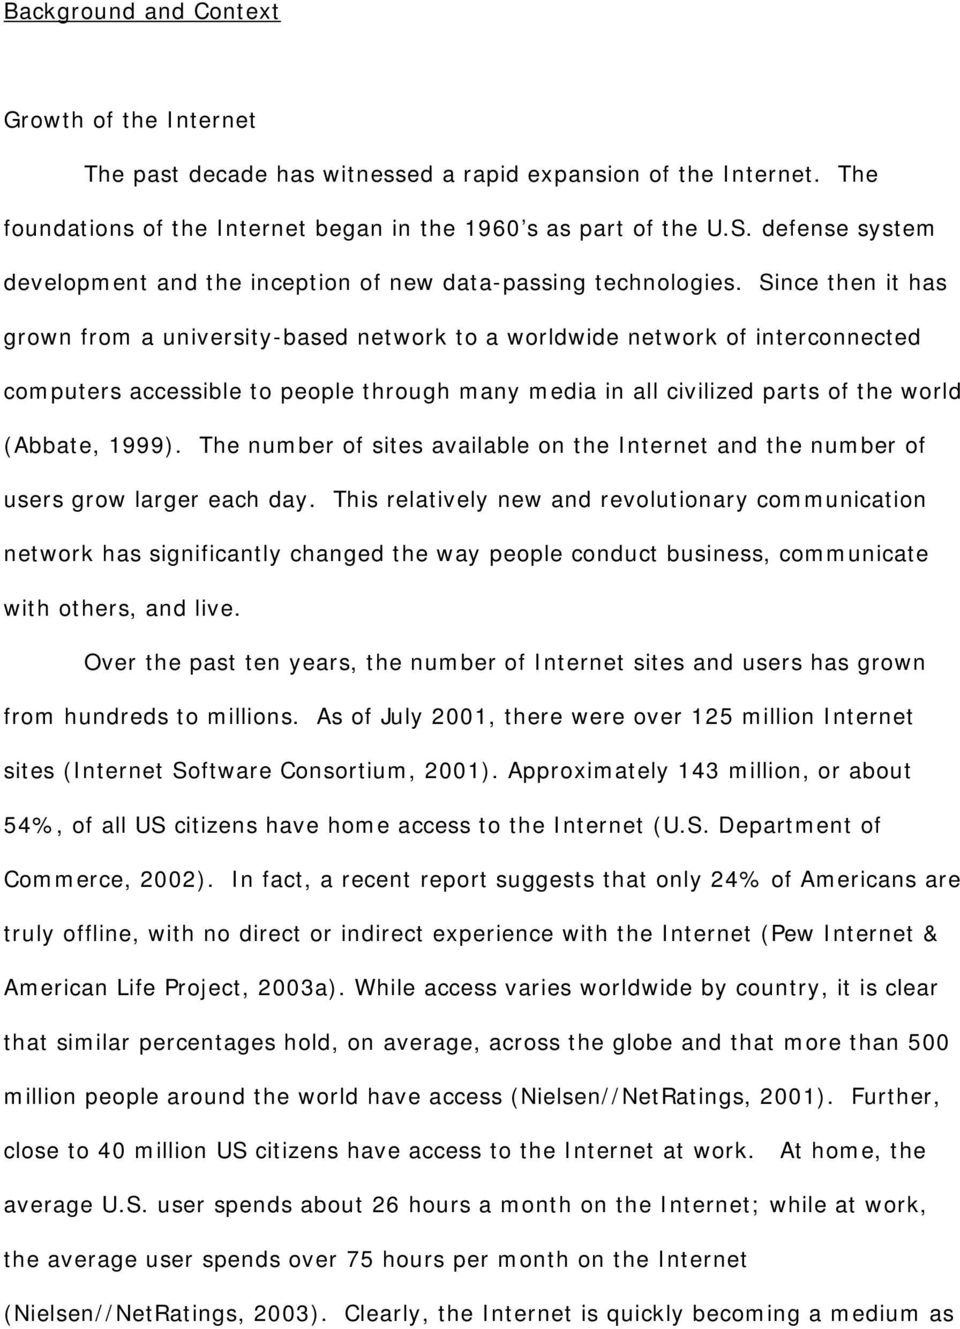 Since then it has grown from a university-based network to a worldwide network of interconnected computers accessible to people through many media in all civilized parts of the world (Abbate, 1999).